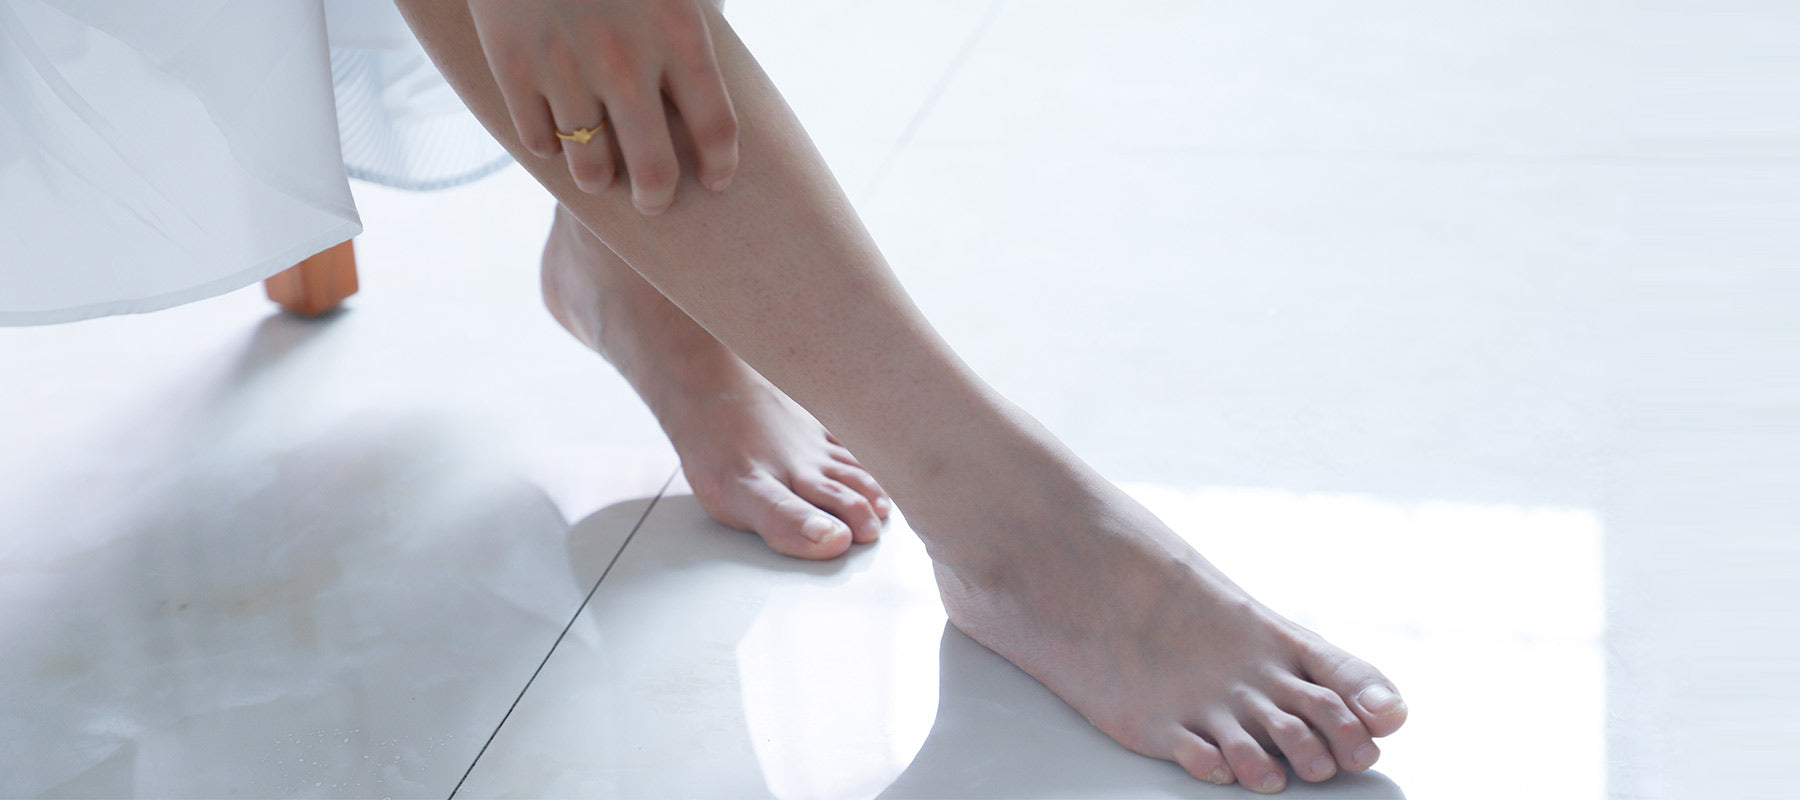 Tips to Moisturise Hands and Feet